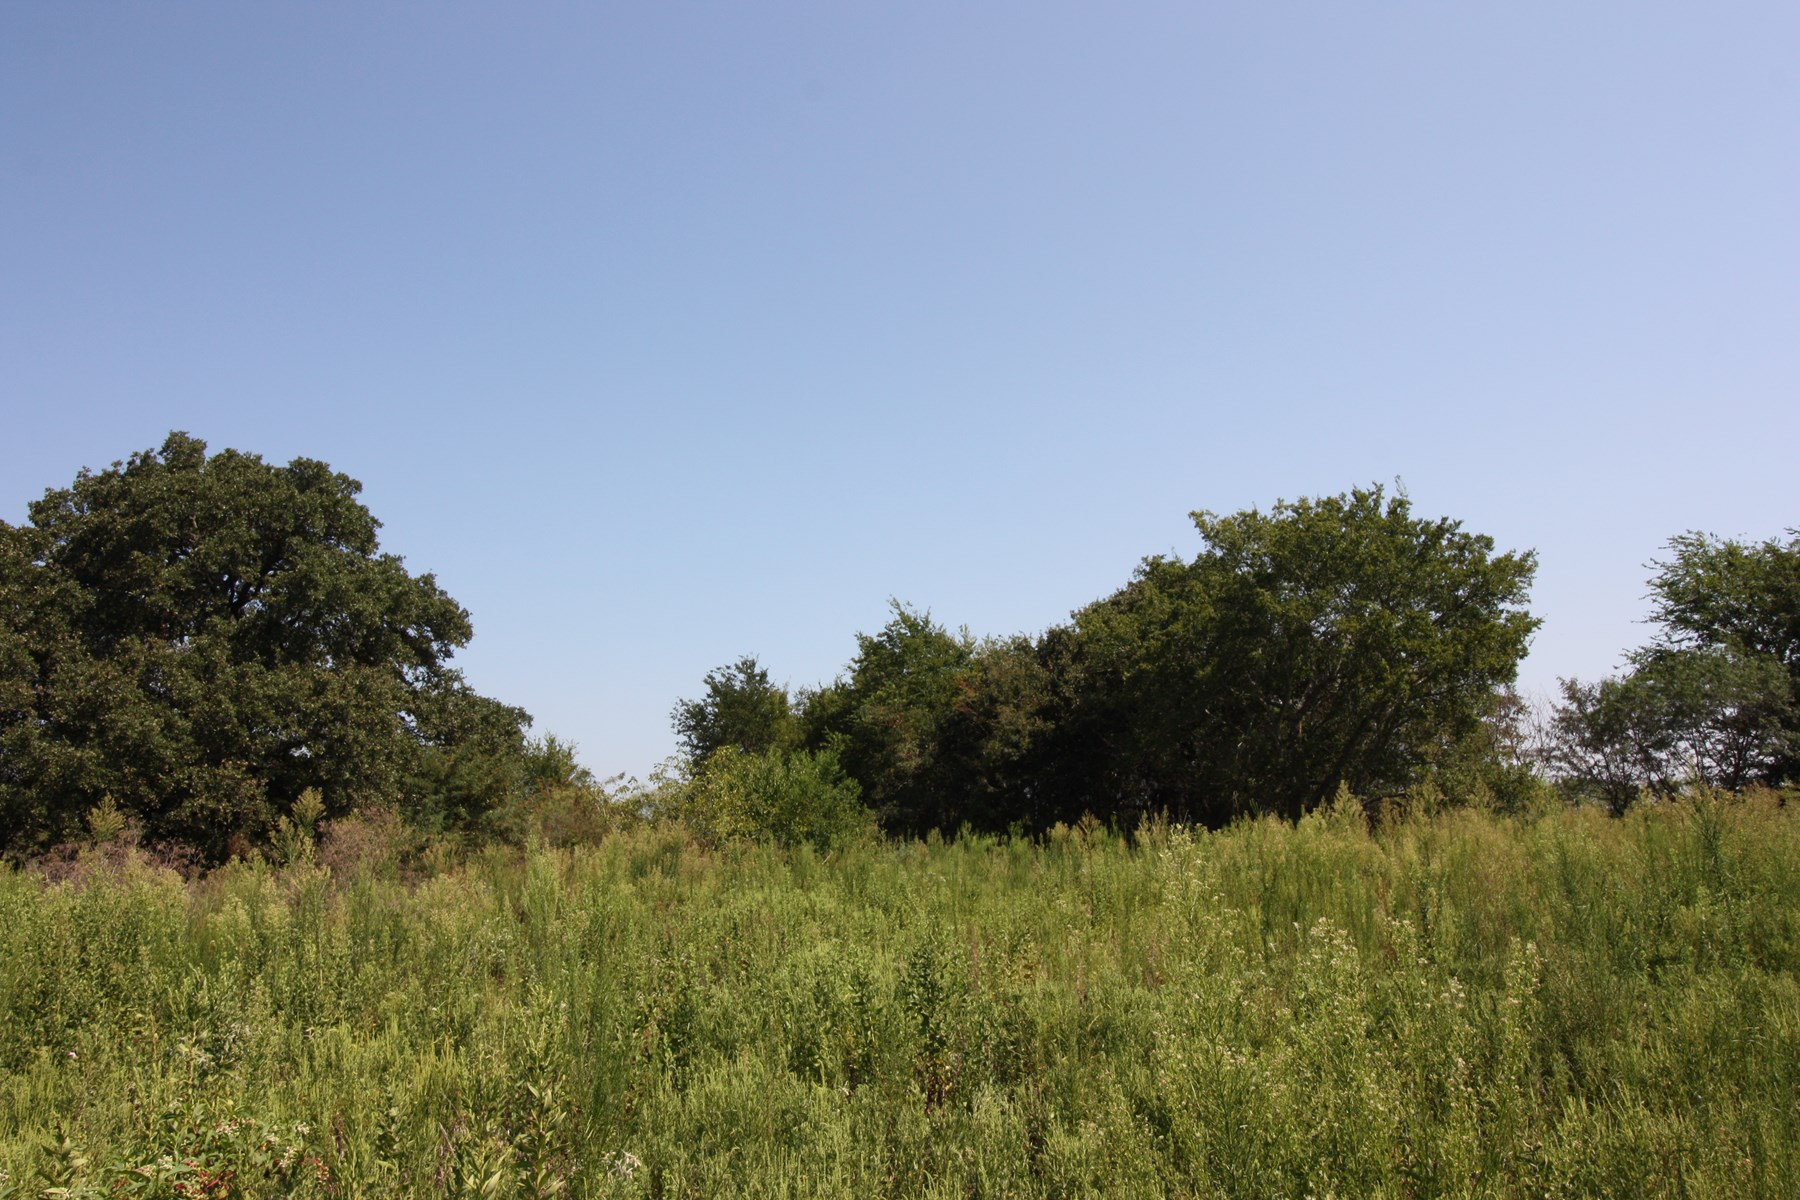 Land For Sale in Limestone County, Texas